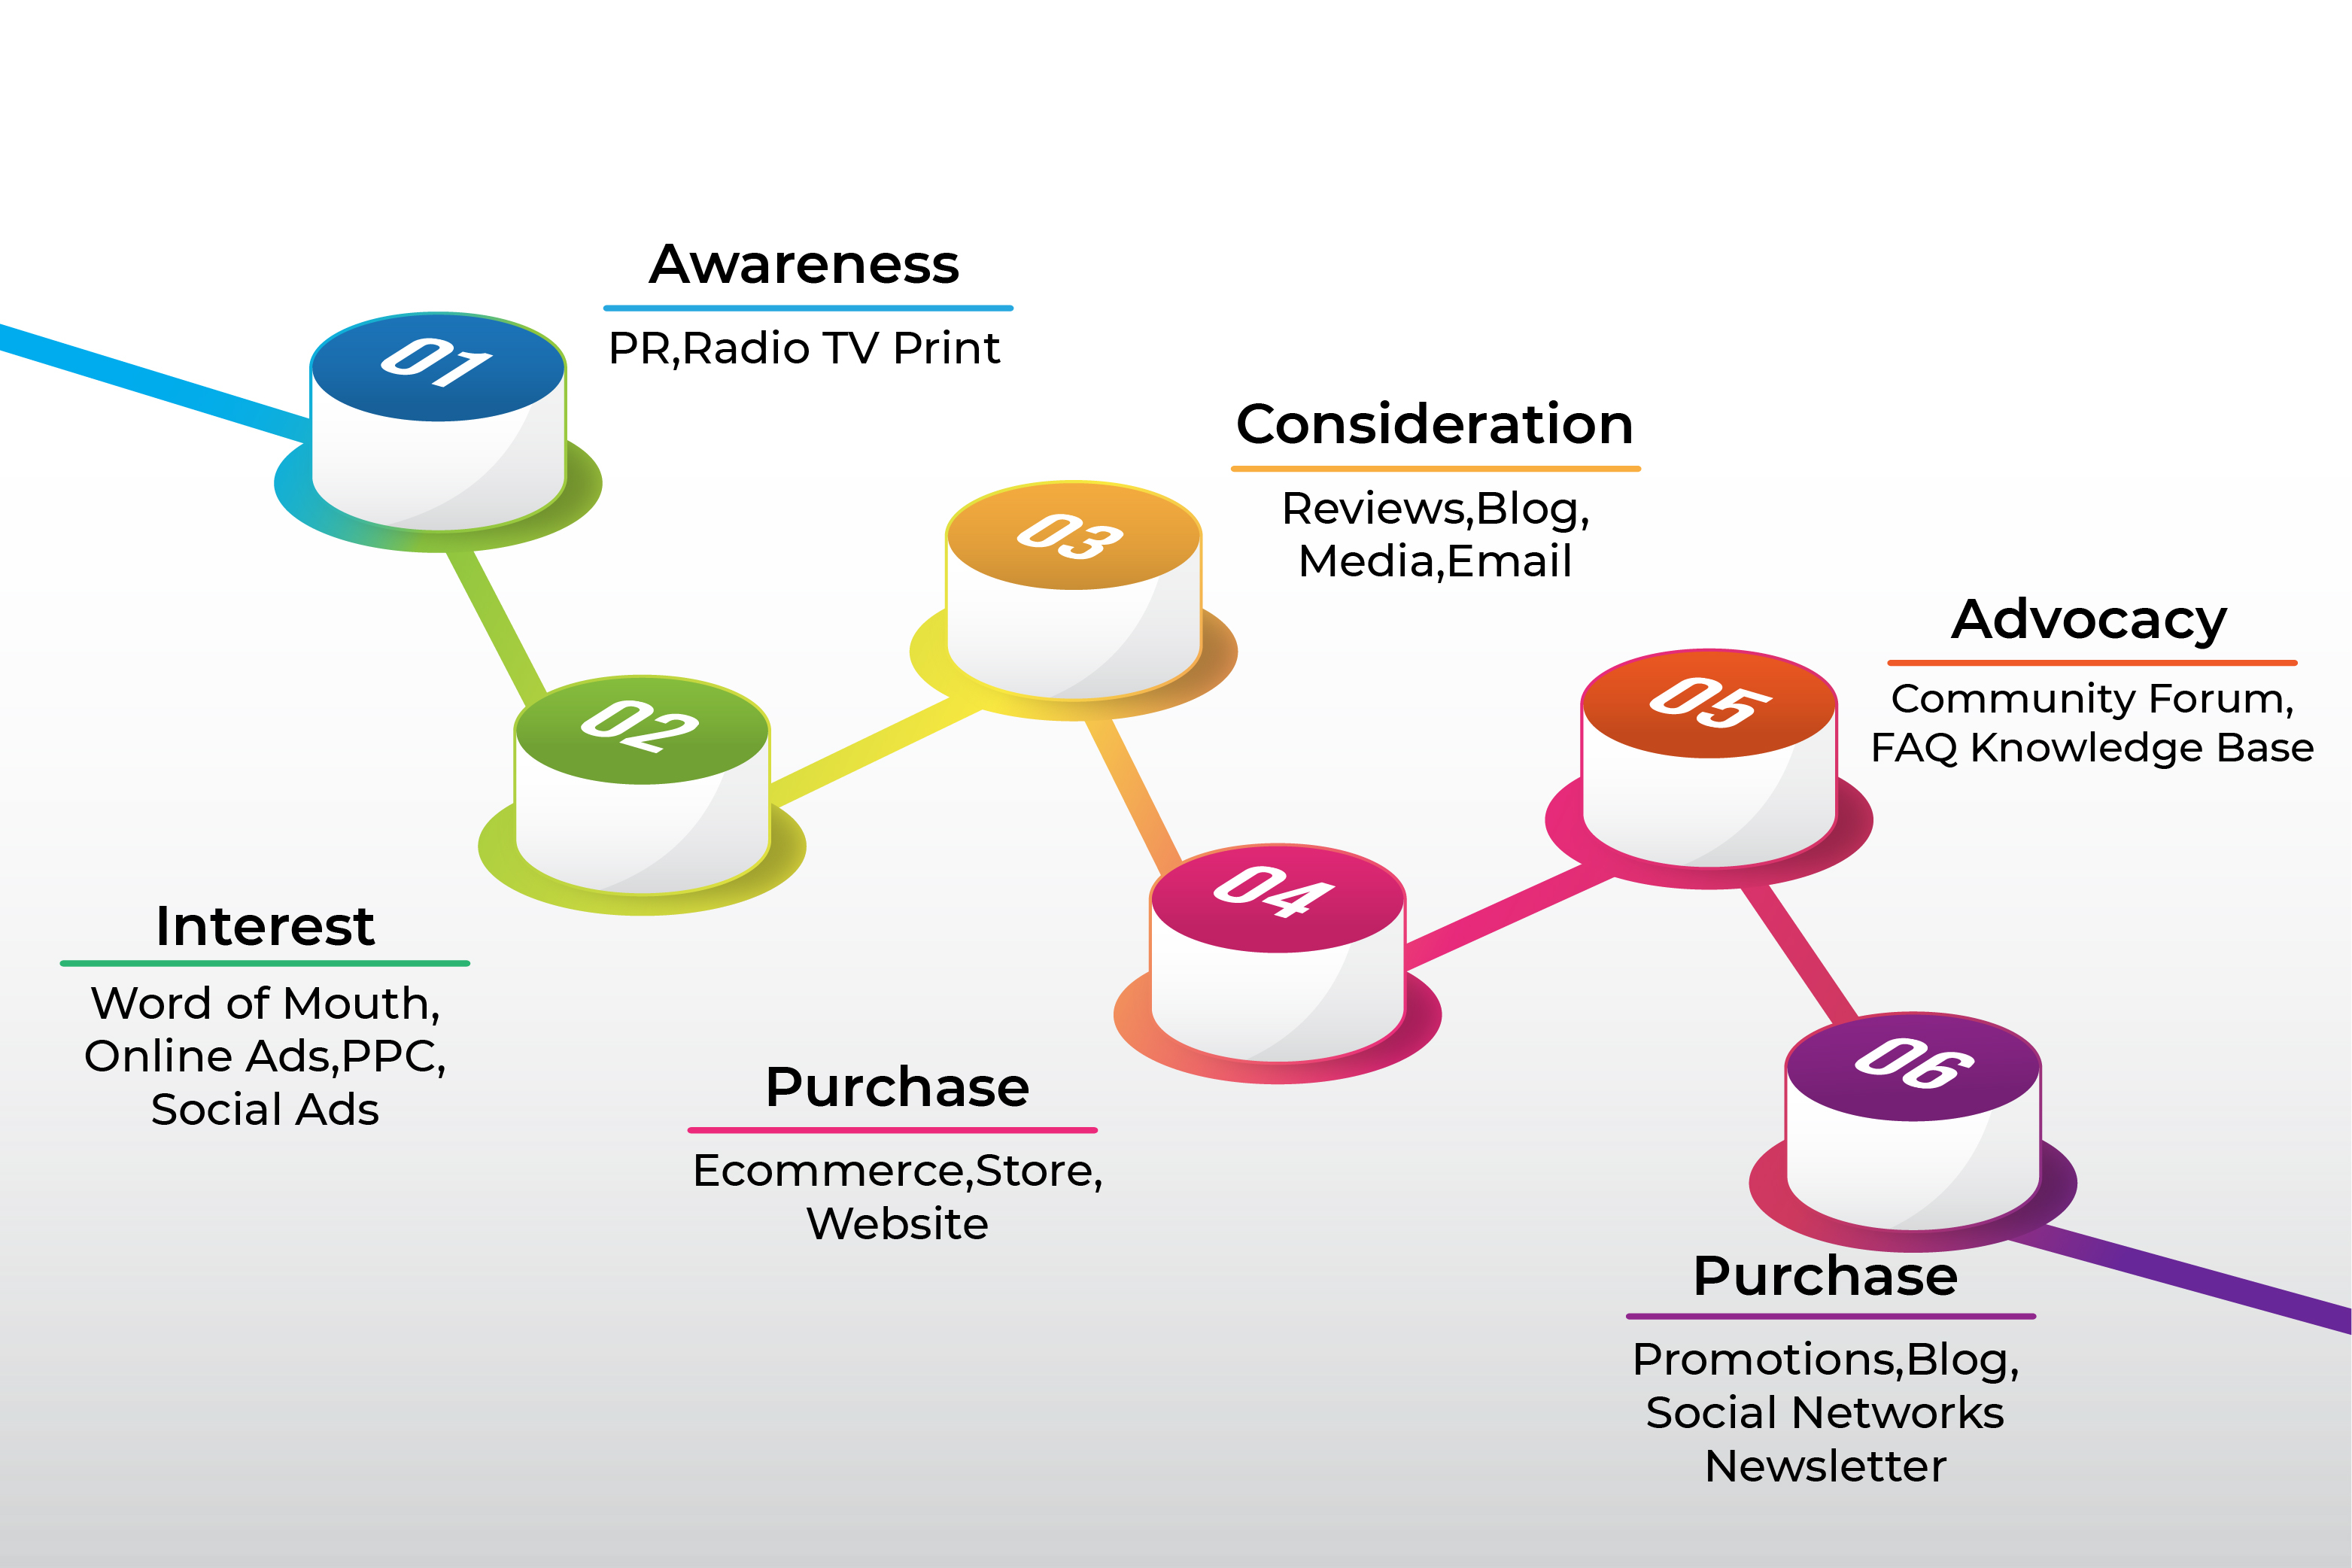 The customer journey includes six phases: awareness, interest, consideration, purchase, advocacy, and purchase.